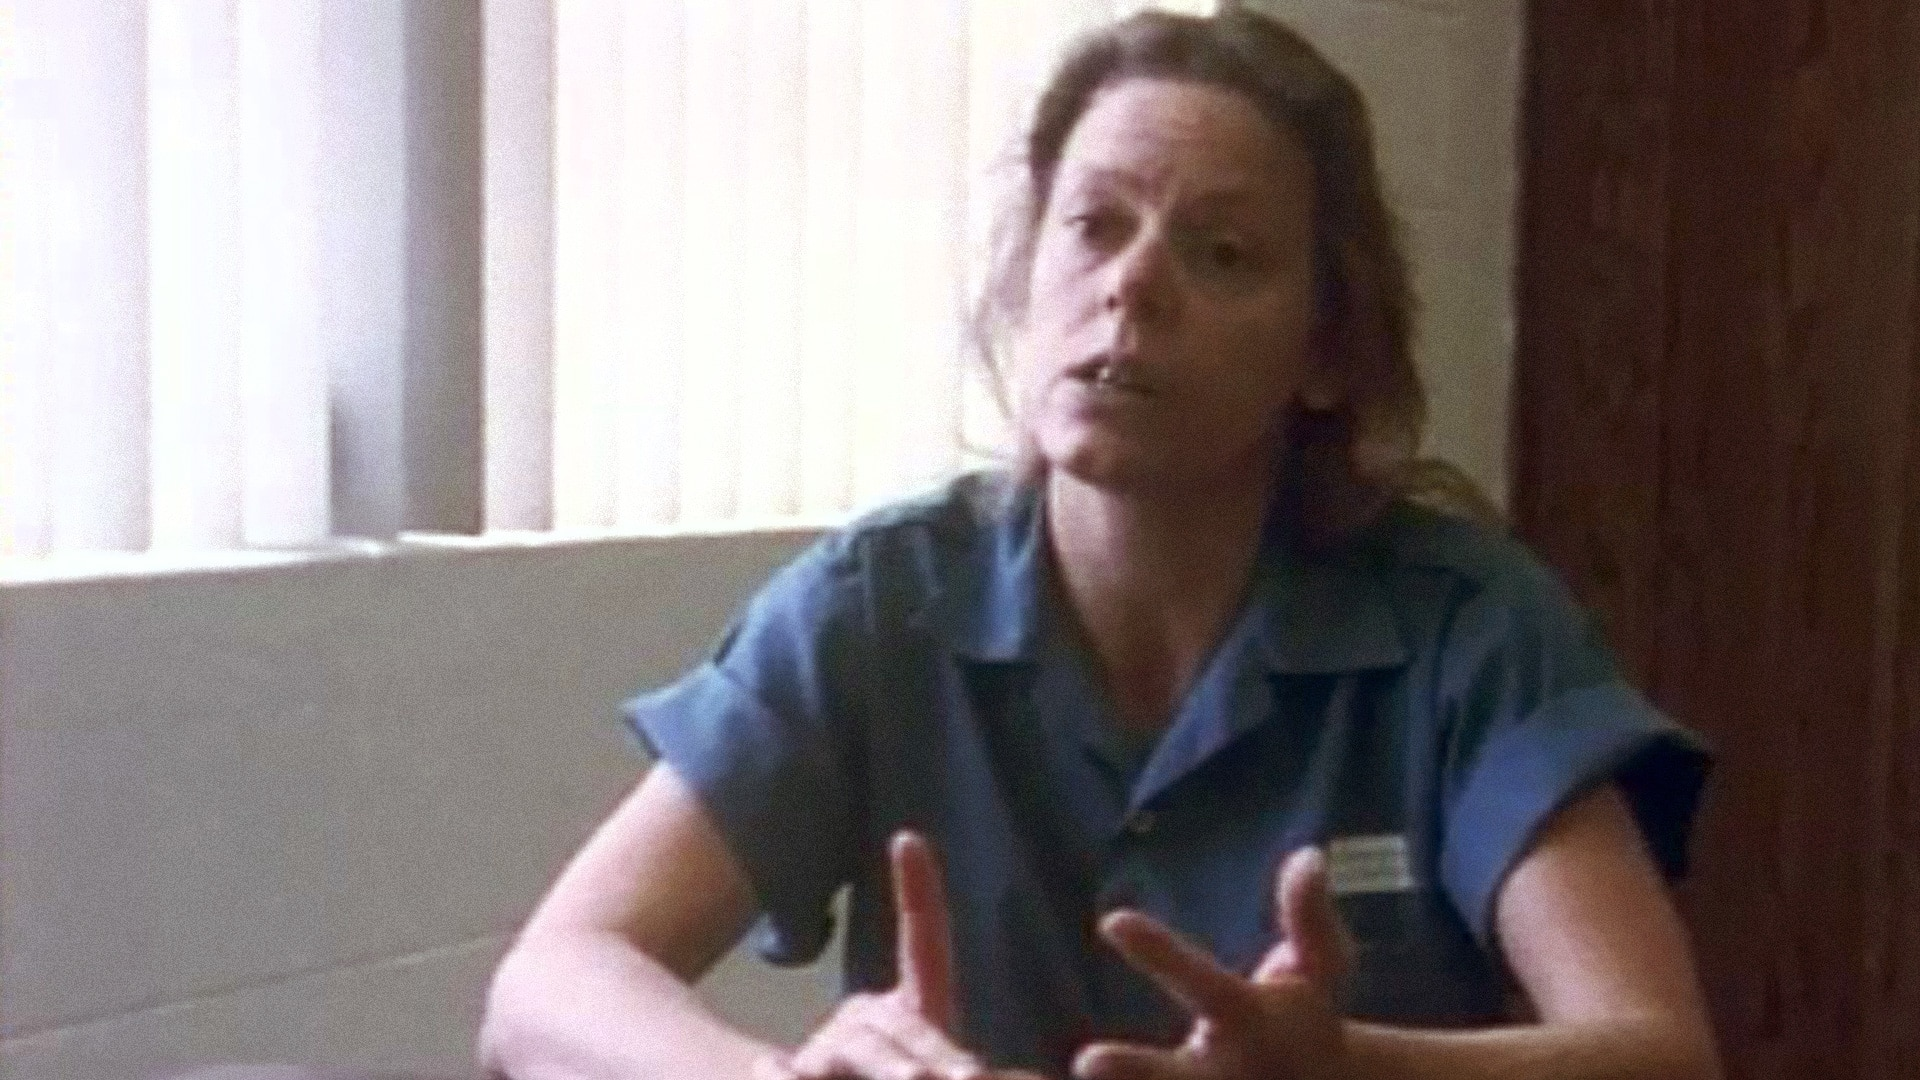 Aileen Wuornos in her prison outfit